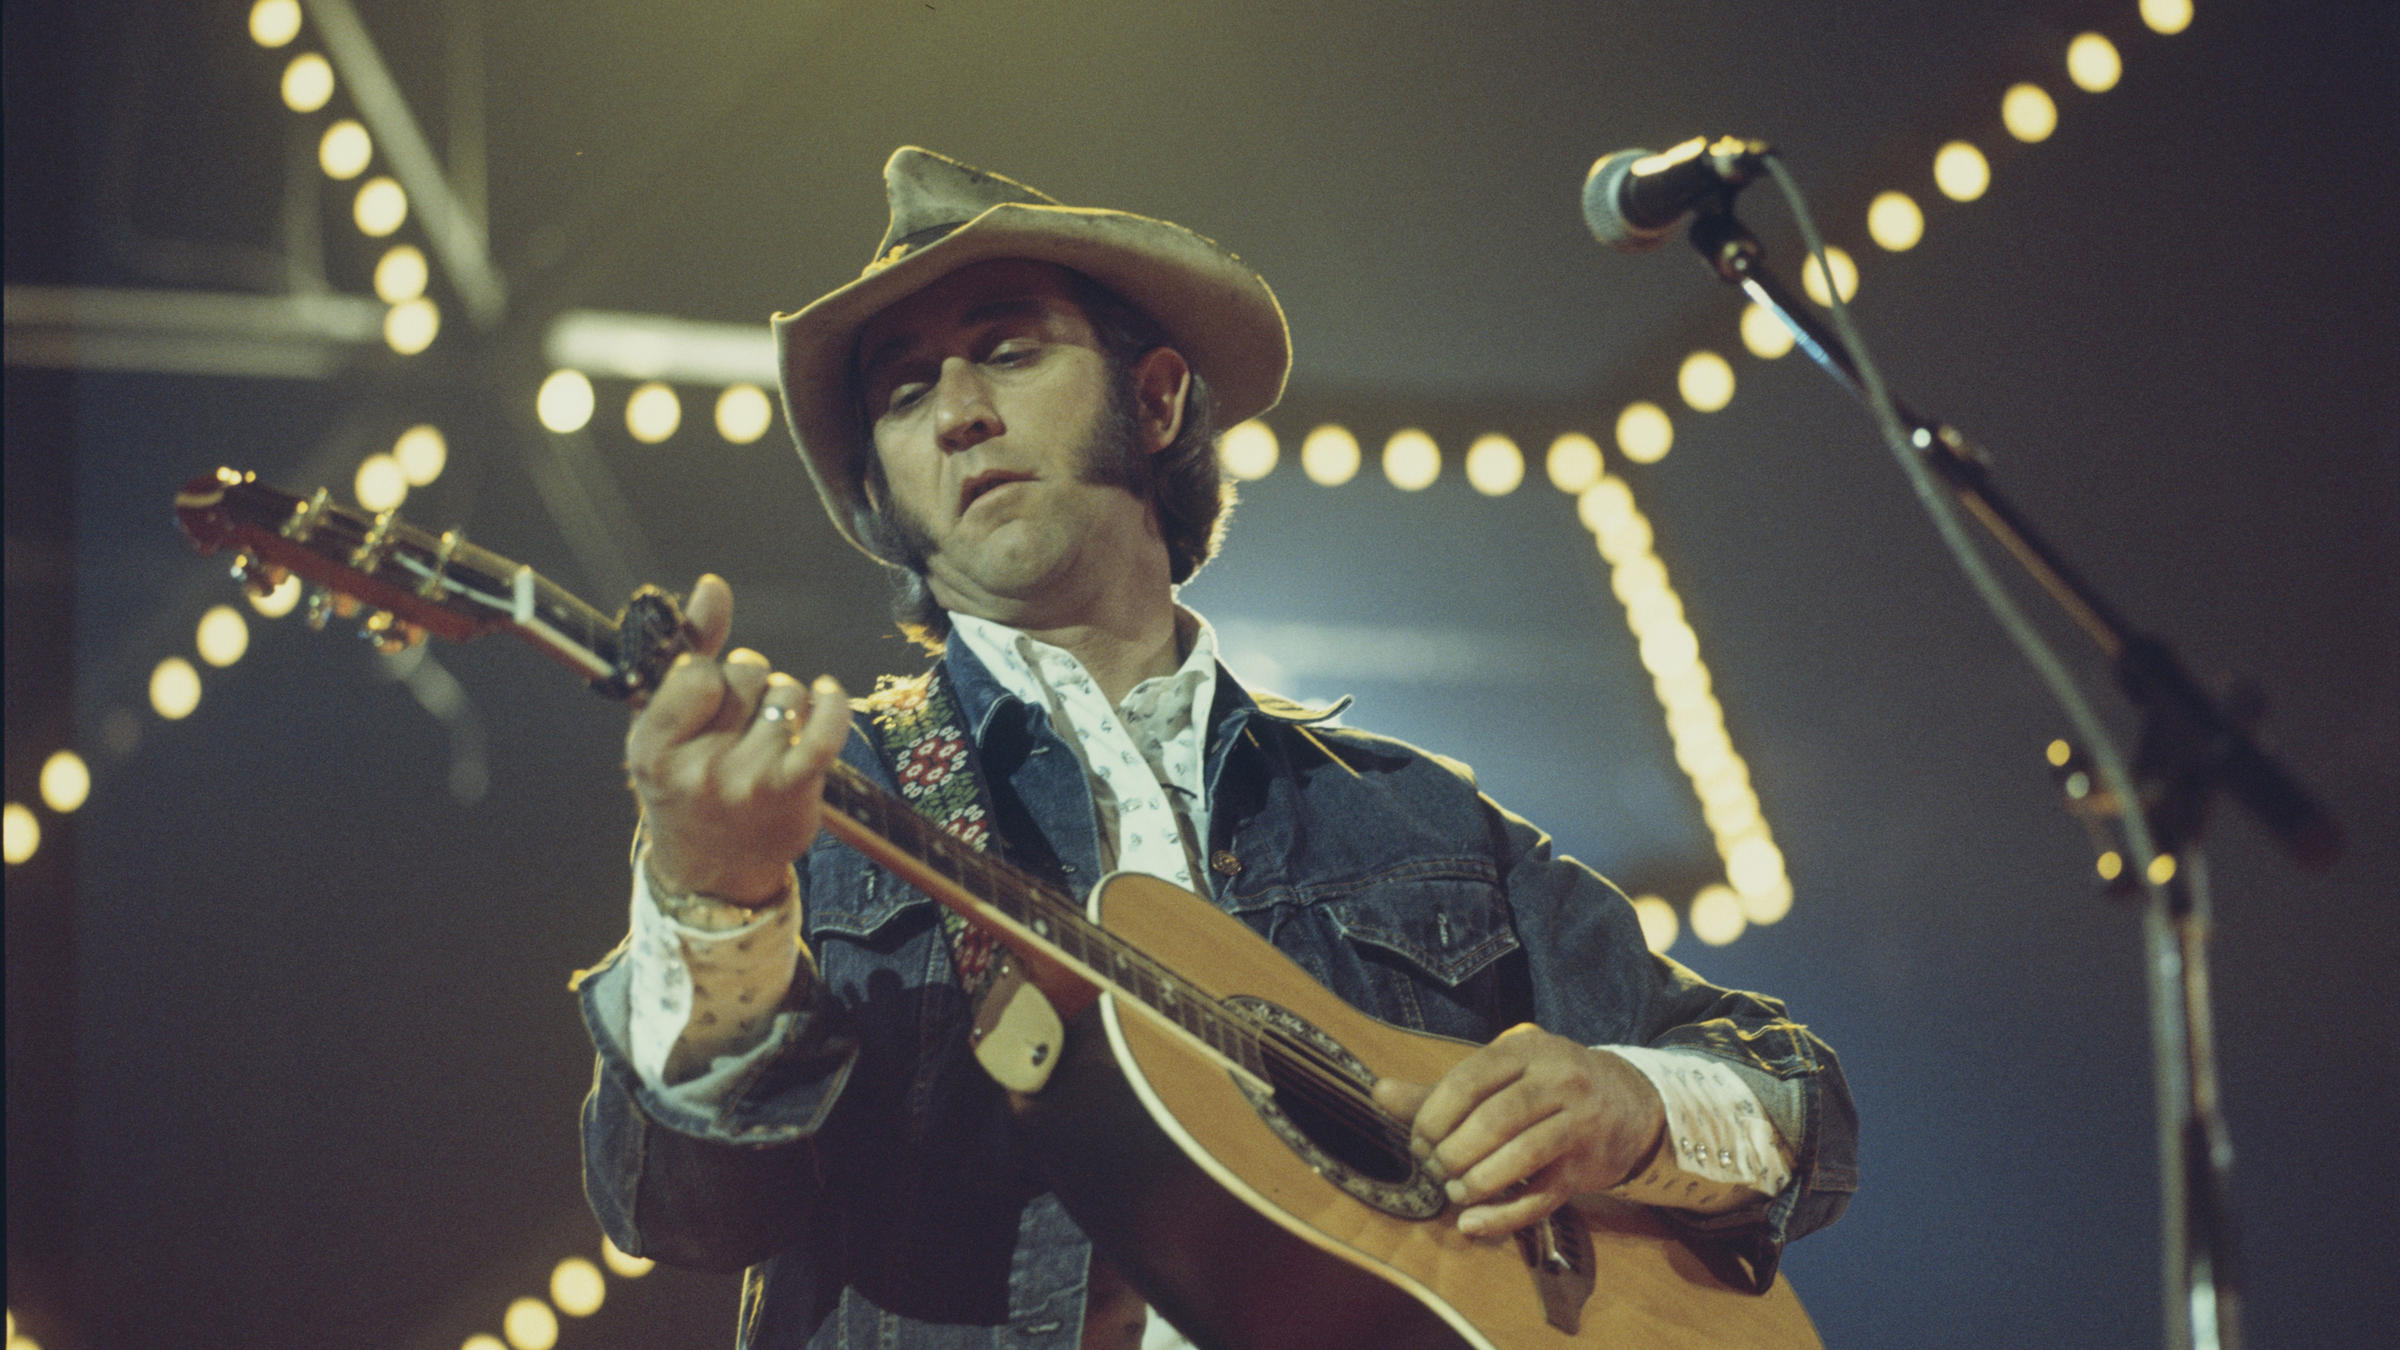 Country star Don Williams, 78, dies after short illness